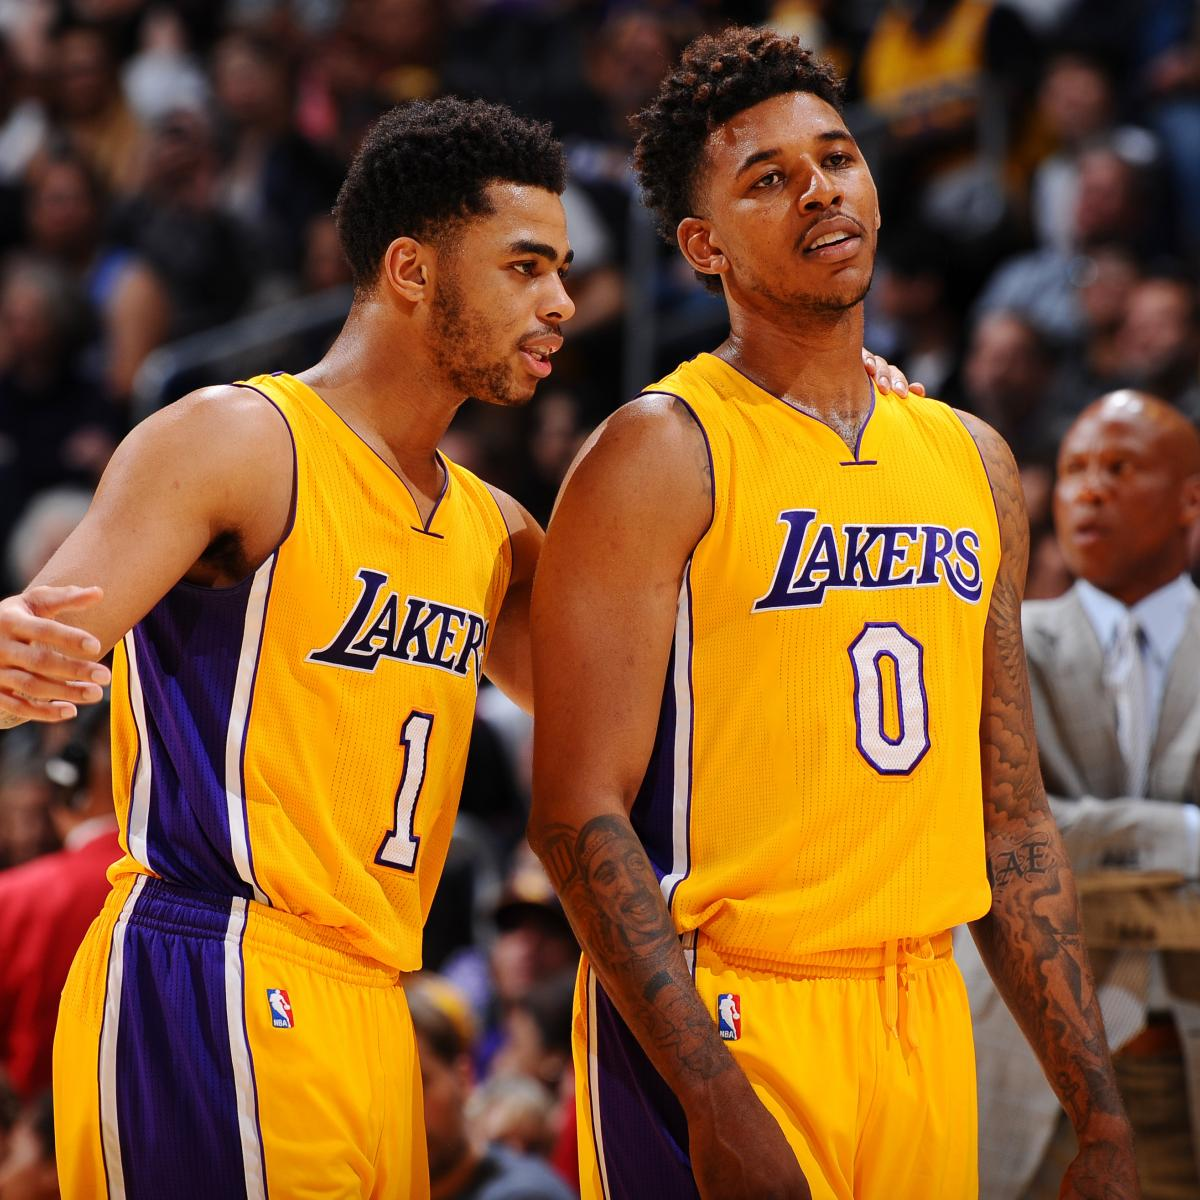 Teams f4 why haven t the los angeles lakers done a trade yet t252325 - Lakers D Angelo Russell Nick Young Drama All Too Predictable Outcome For Both Bleacher Report